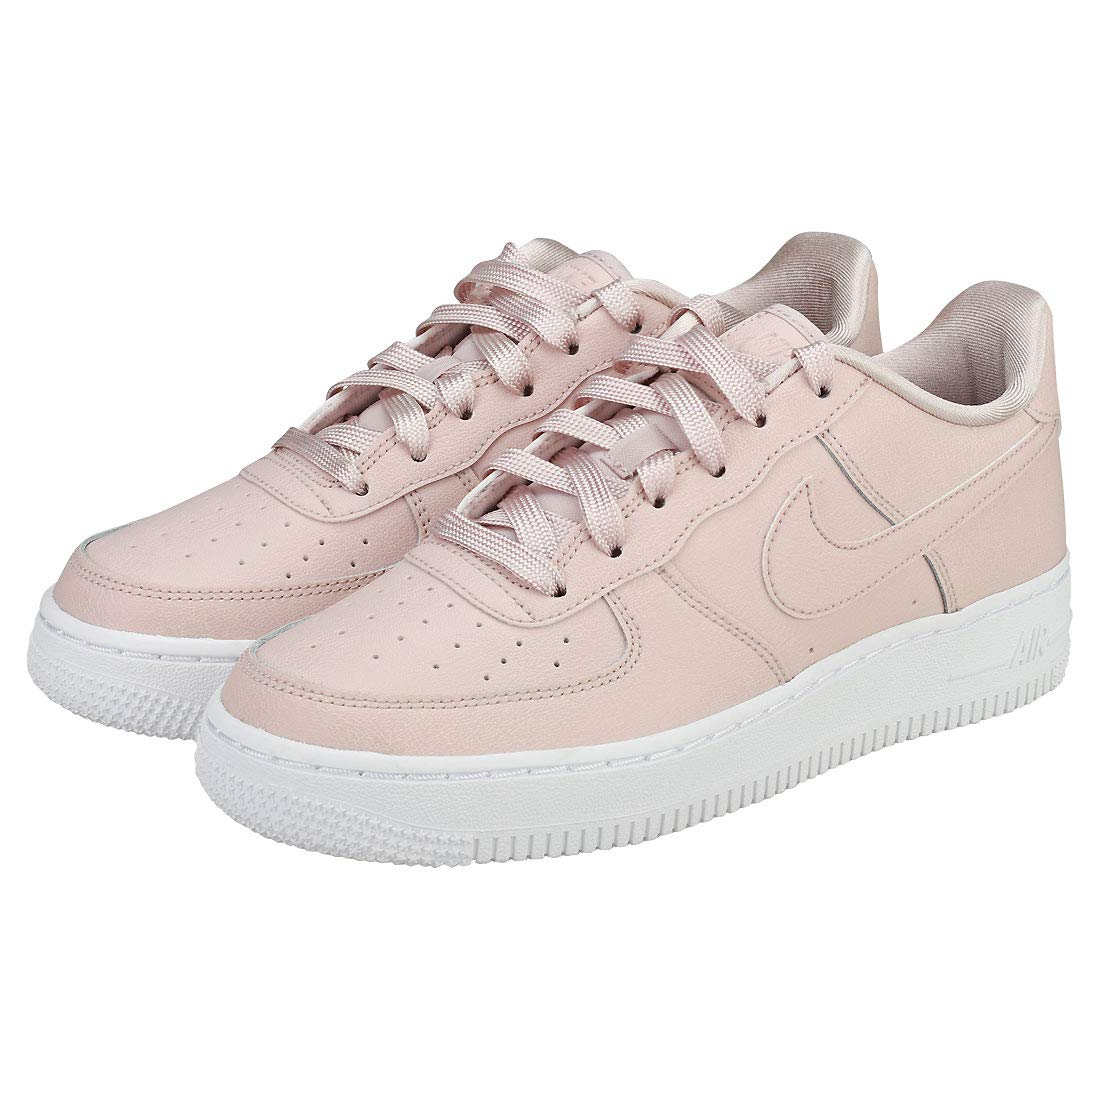 cheap for discount 7578d 29067 Nike Air Force 1 SS (GS), Chaussures de Fitness Femme